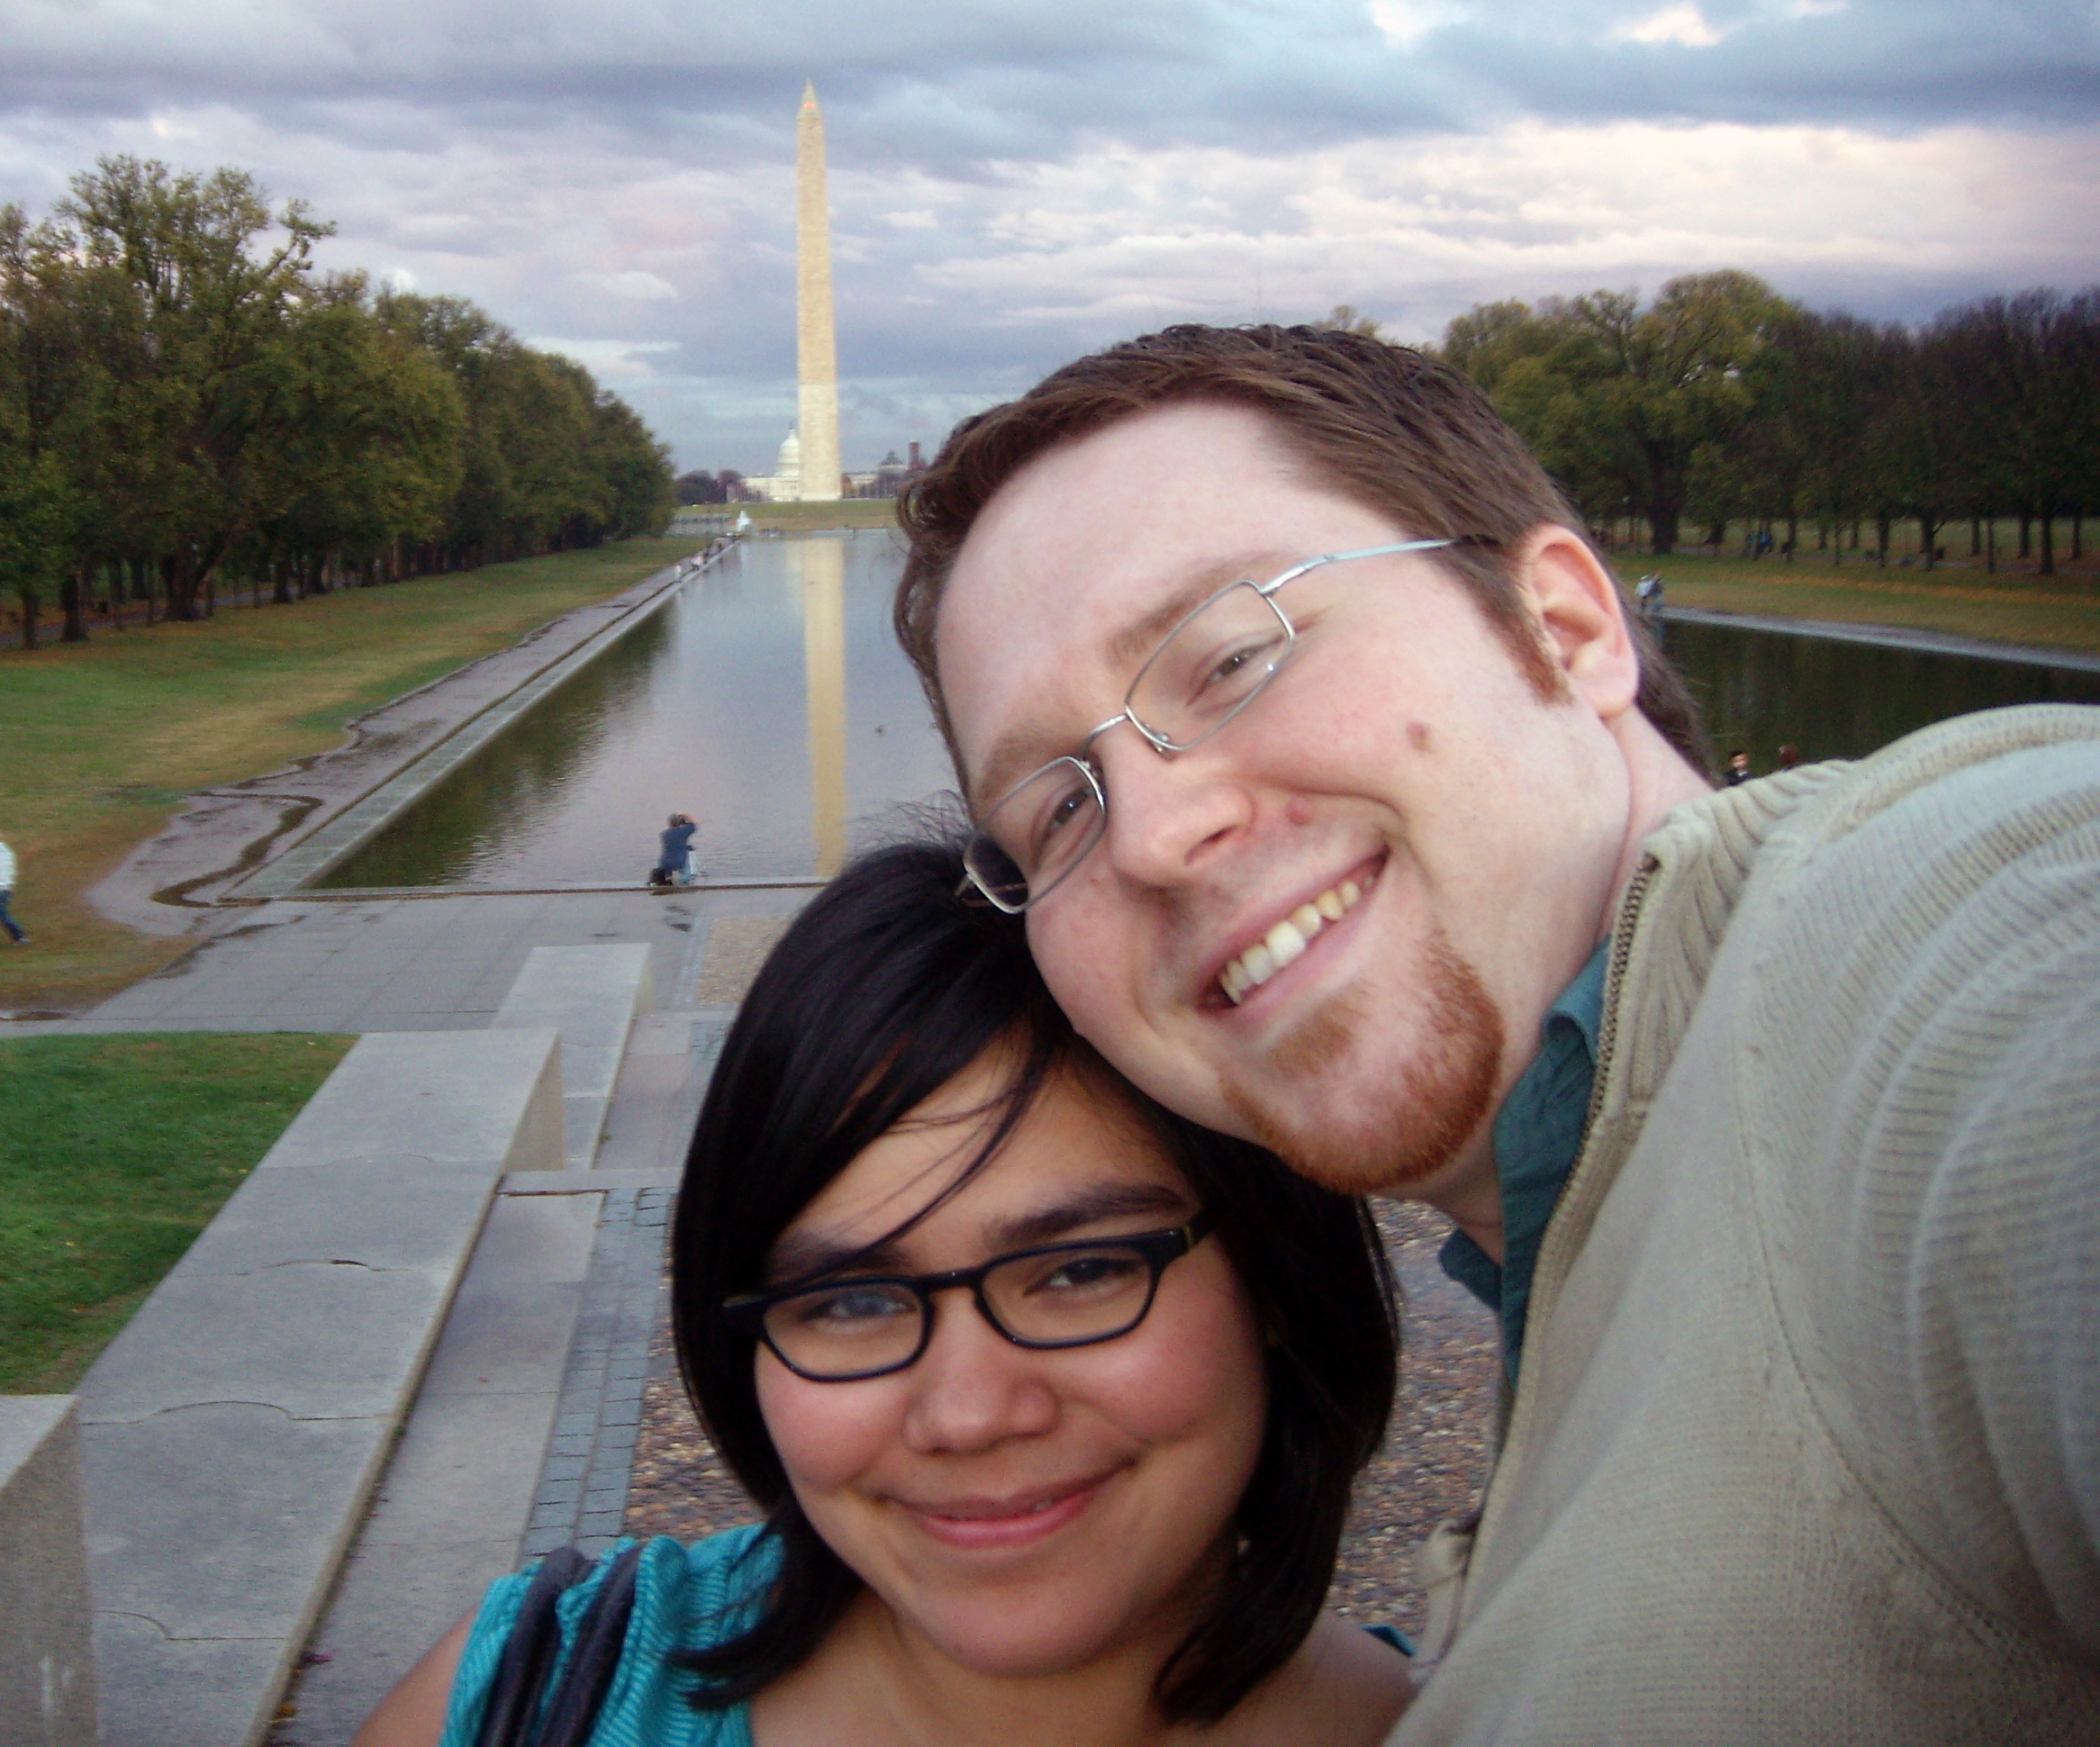 Looking out from the Lincoln Memorial. We're adorable.